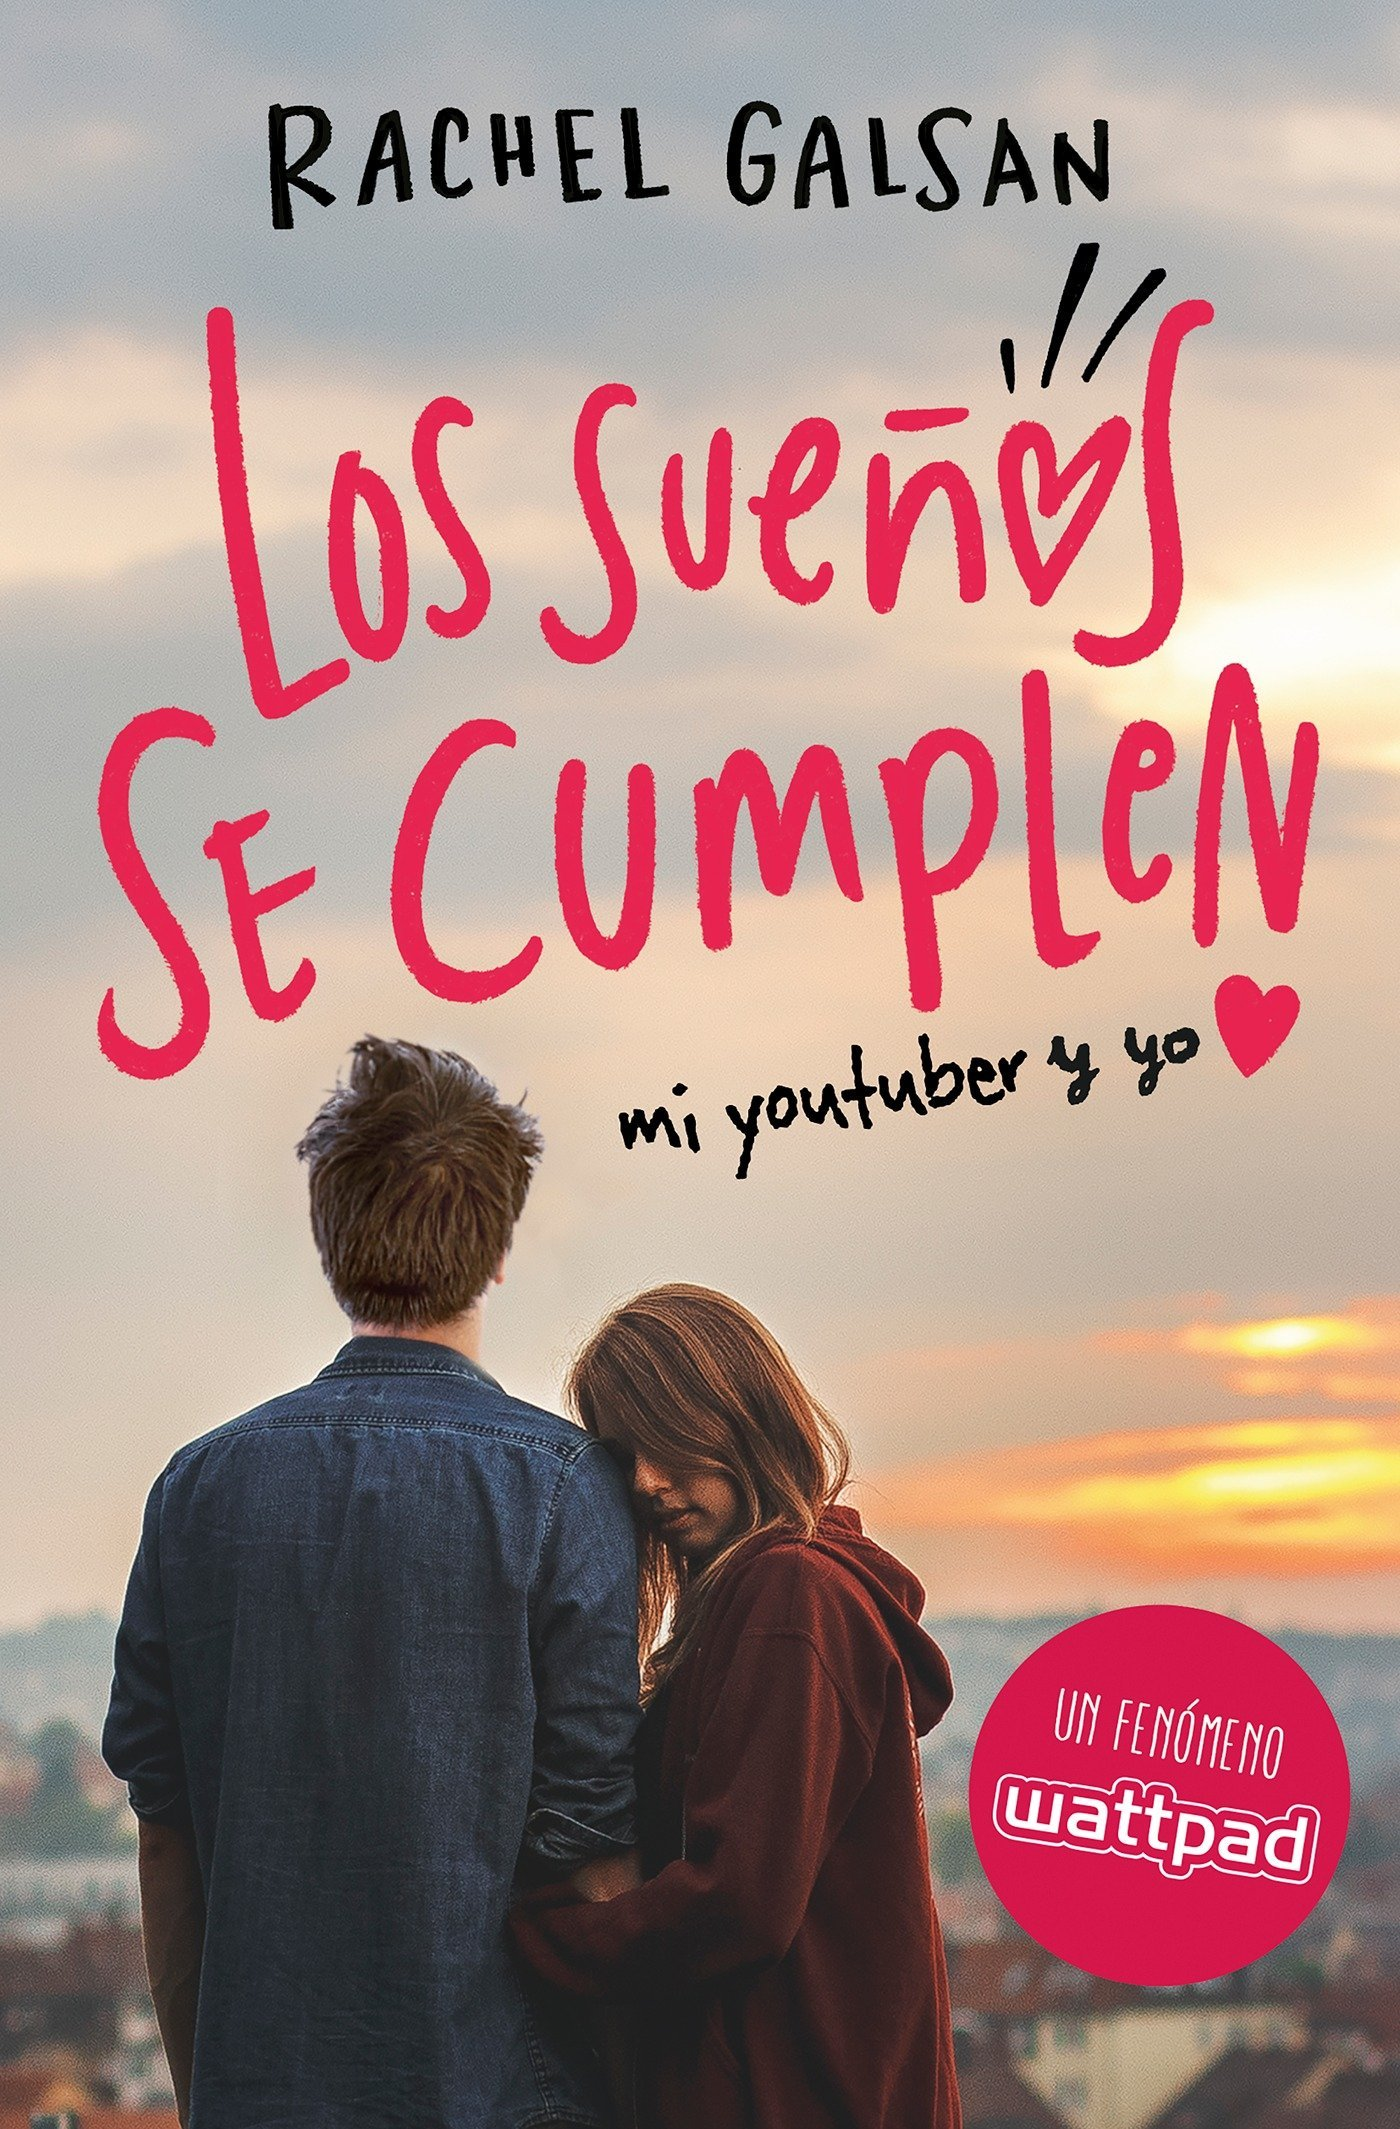 Los sueños se cumplen / Dreams Come True: Mi youtuber y yo (Spanish Edition): Rachel Galsan: 9788420485348: Amazon.com: Books